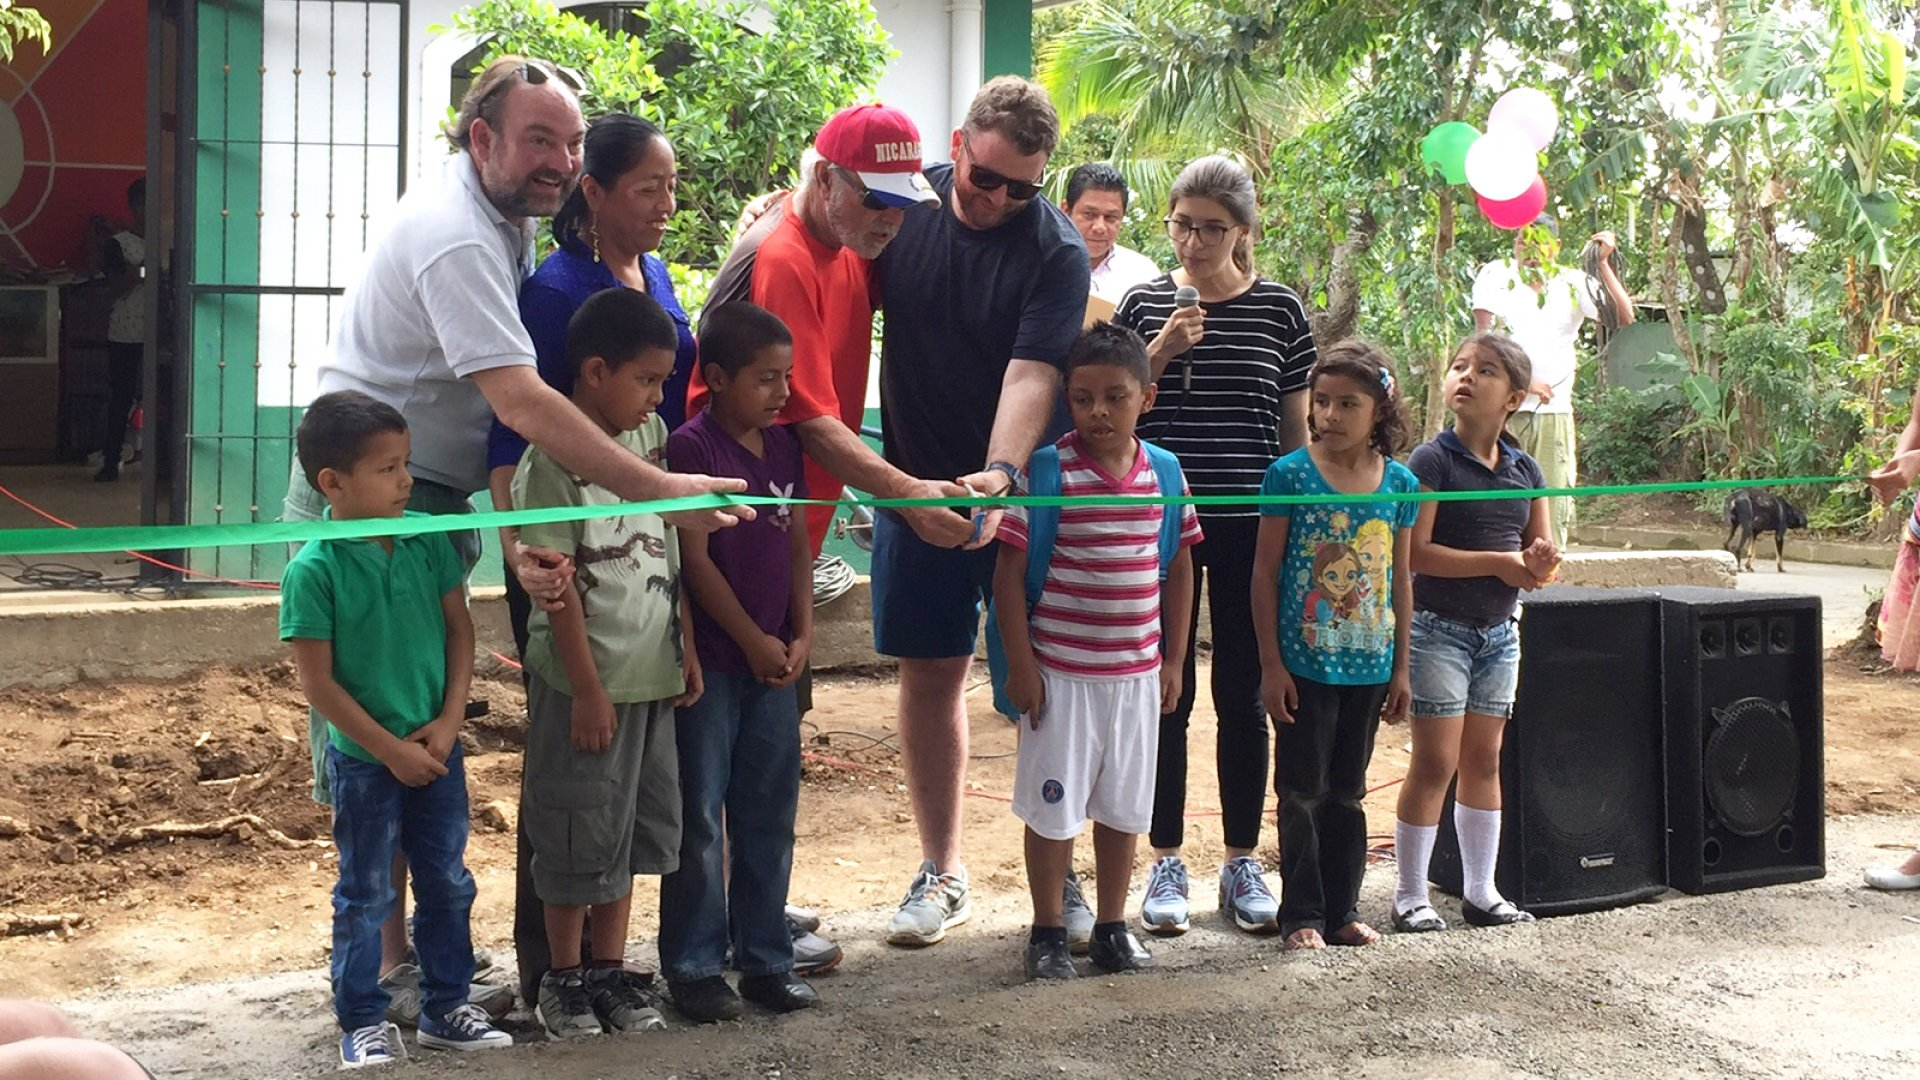 CEO of Fabretto Kevin Marinacci (back left), Ed Ciperski, father of Zachary Ciperski, and President of Elite SEM Zach Morrison are joined by Fabretto staff, volunteers and children at the ribbon-cutting ceremony for the pavilion next to the Zach Ciperski library in San Juan de Oriente, Nicaragua.